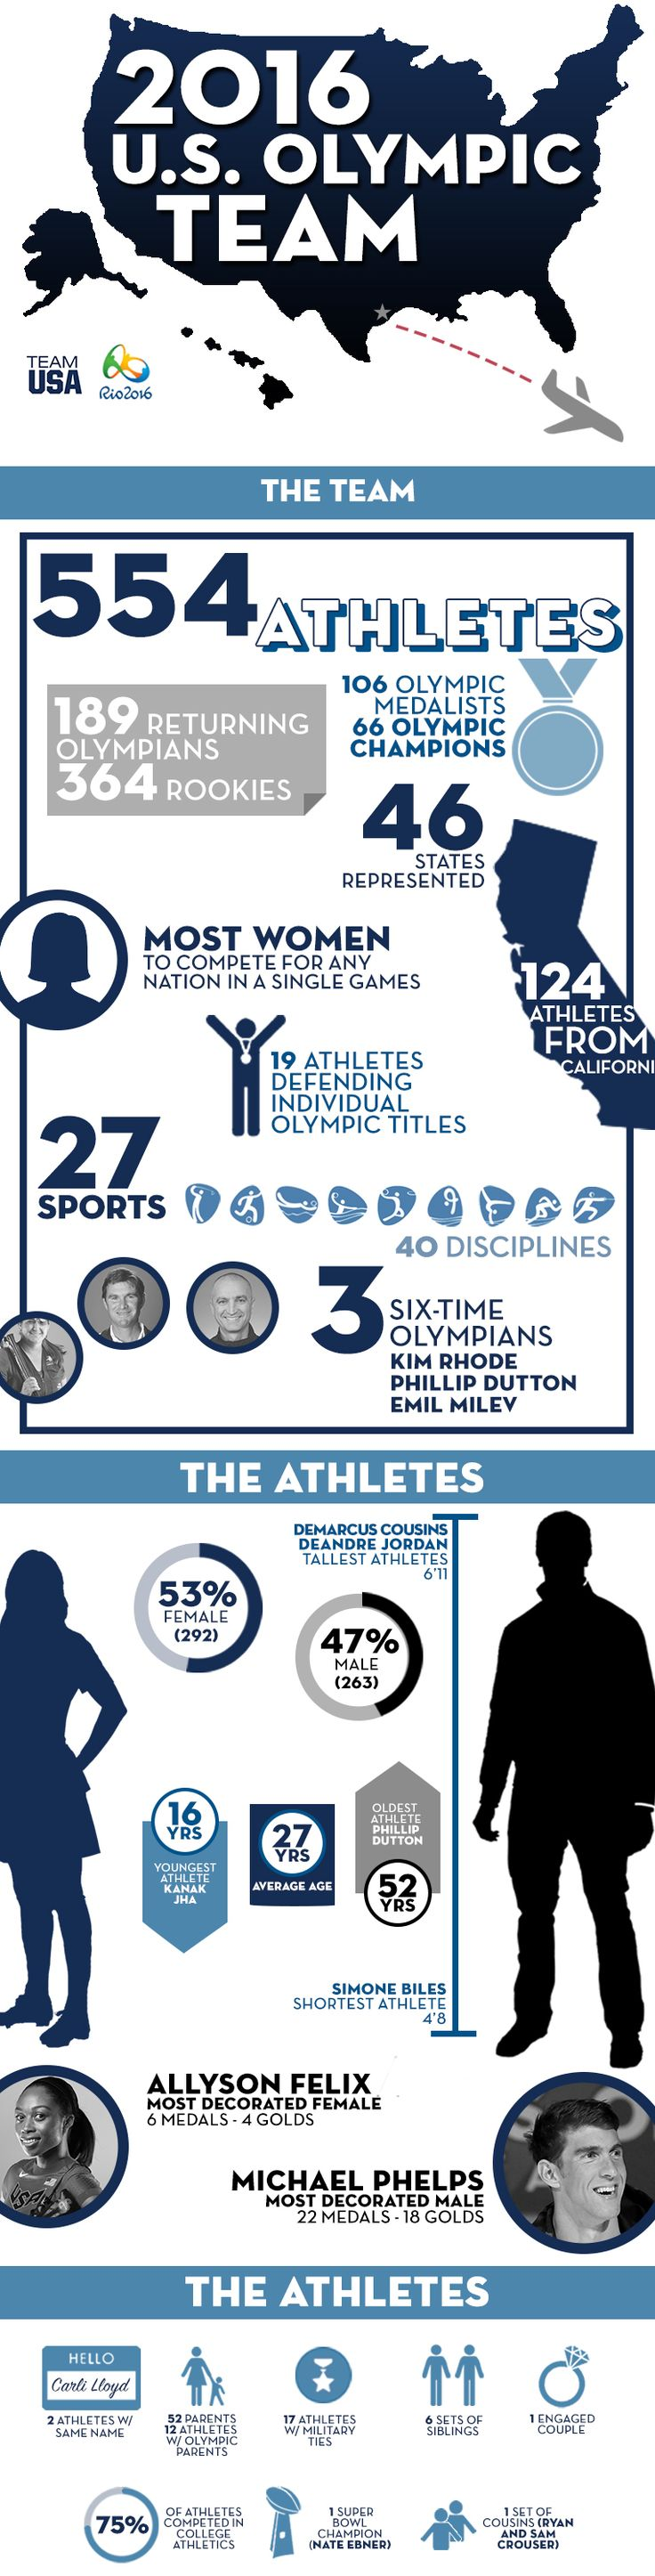 U.S. Olympic Committee Announces 554-Member 2016 U.S. Olympic Team! Infographic on age, height, geography, family ties, and other cool demographics on the US athletes competing in Rio.